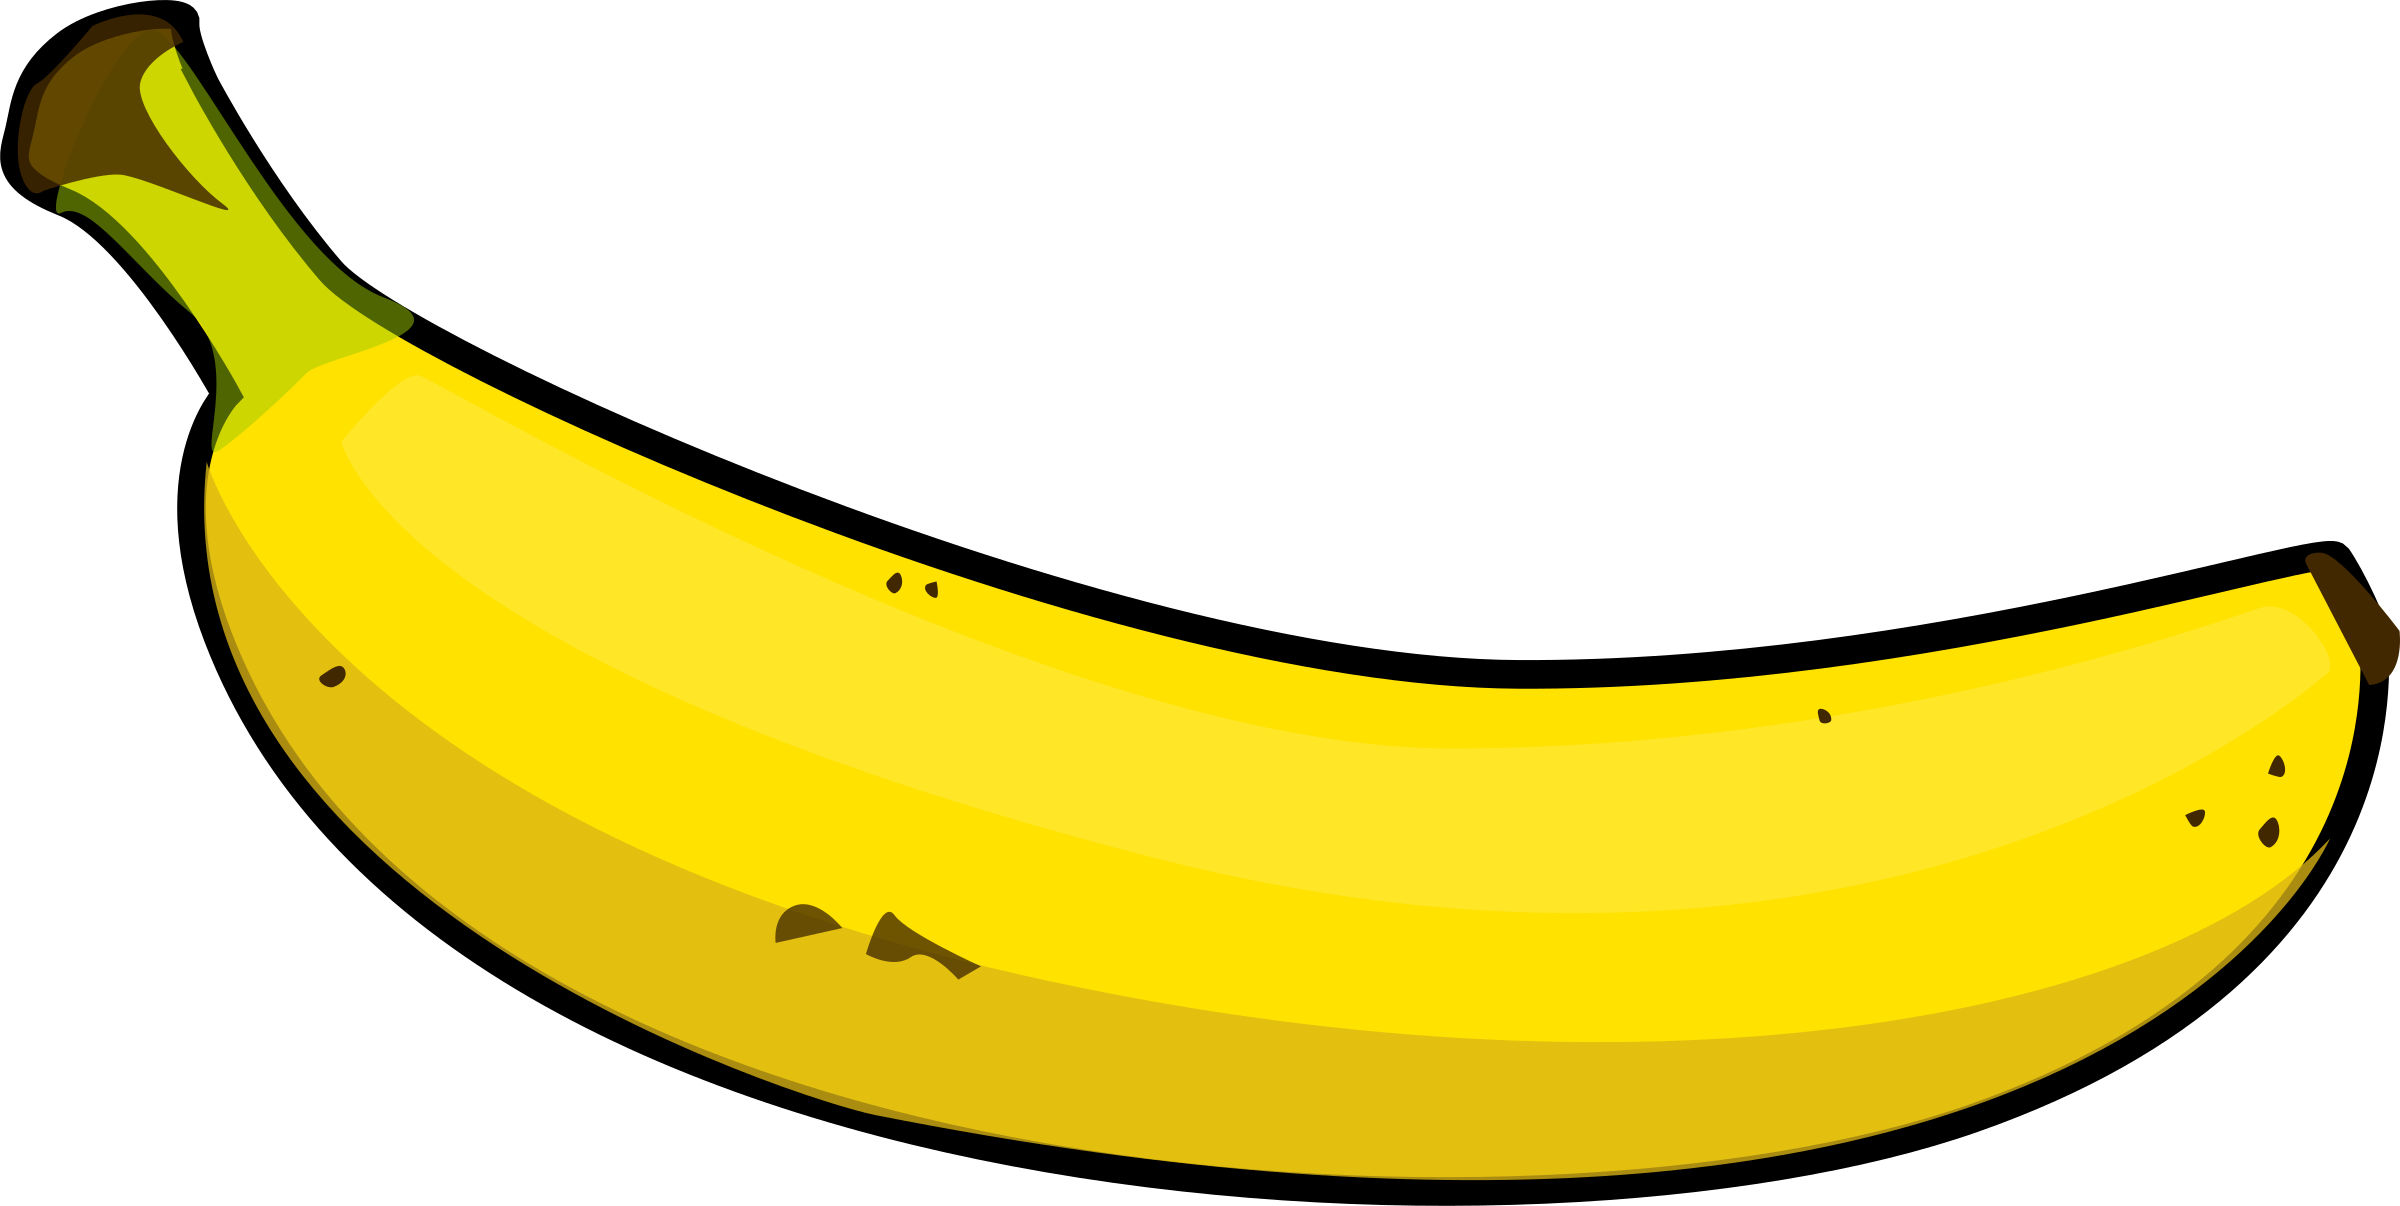 Good Banana Clipart & Look At Banana Hq Clip Art Images.